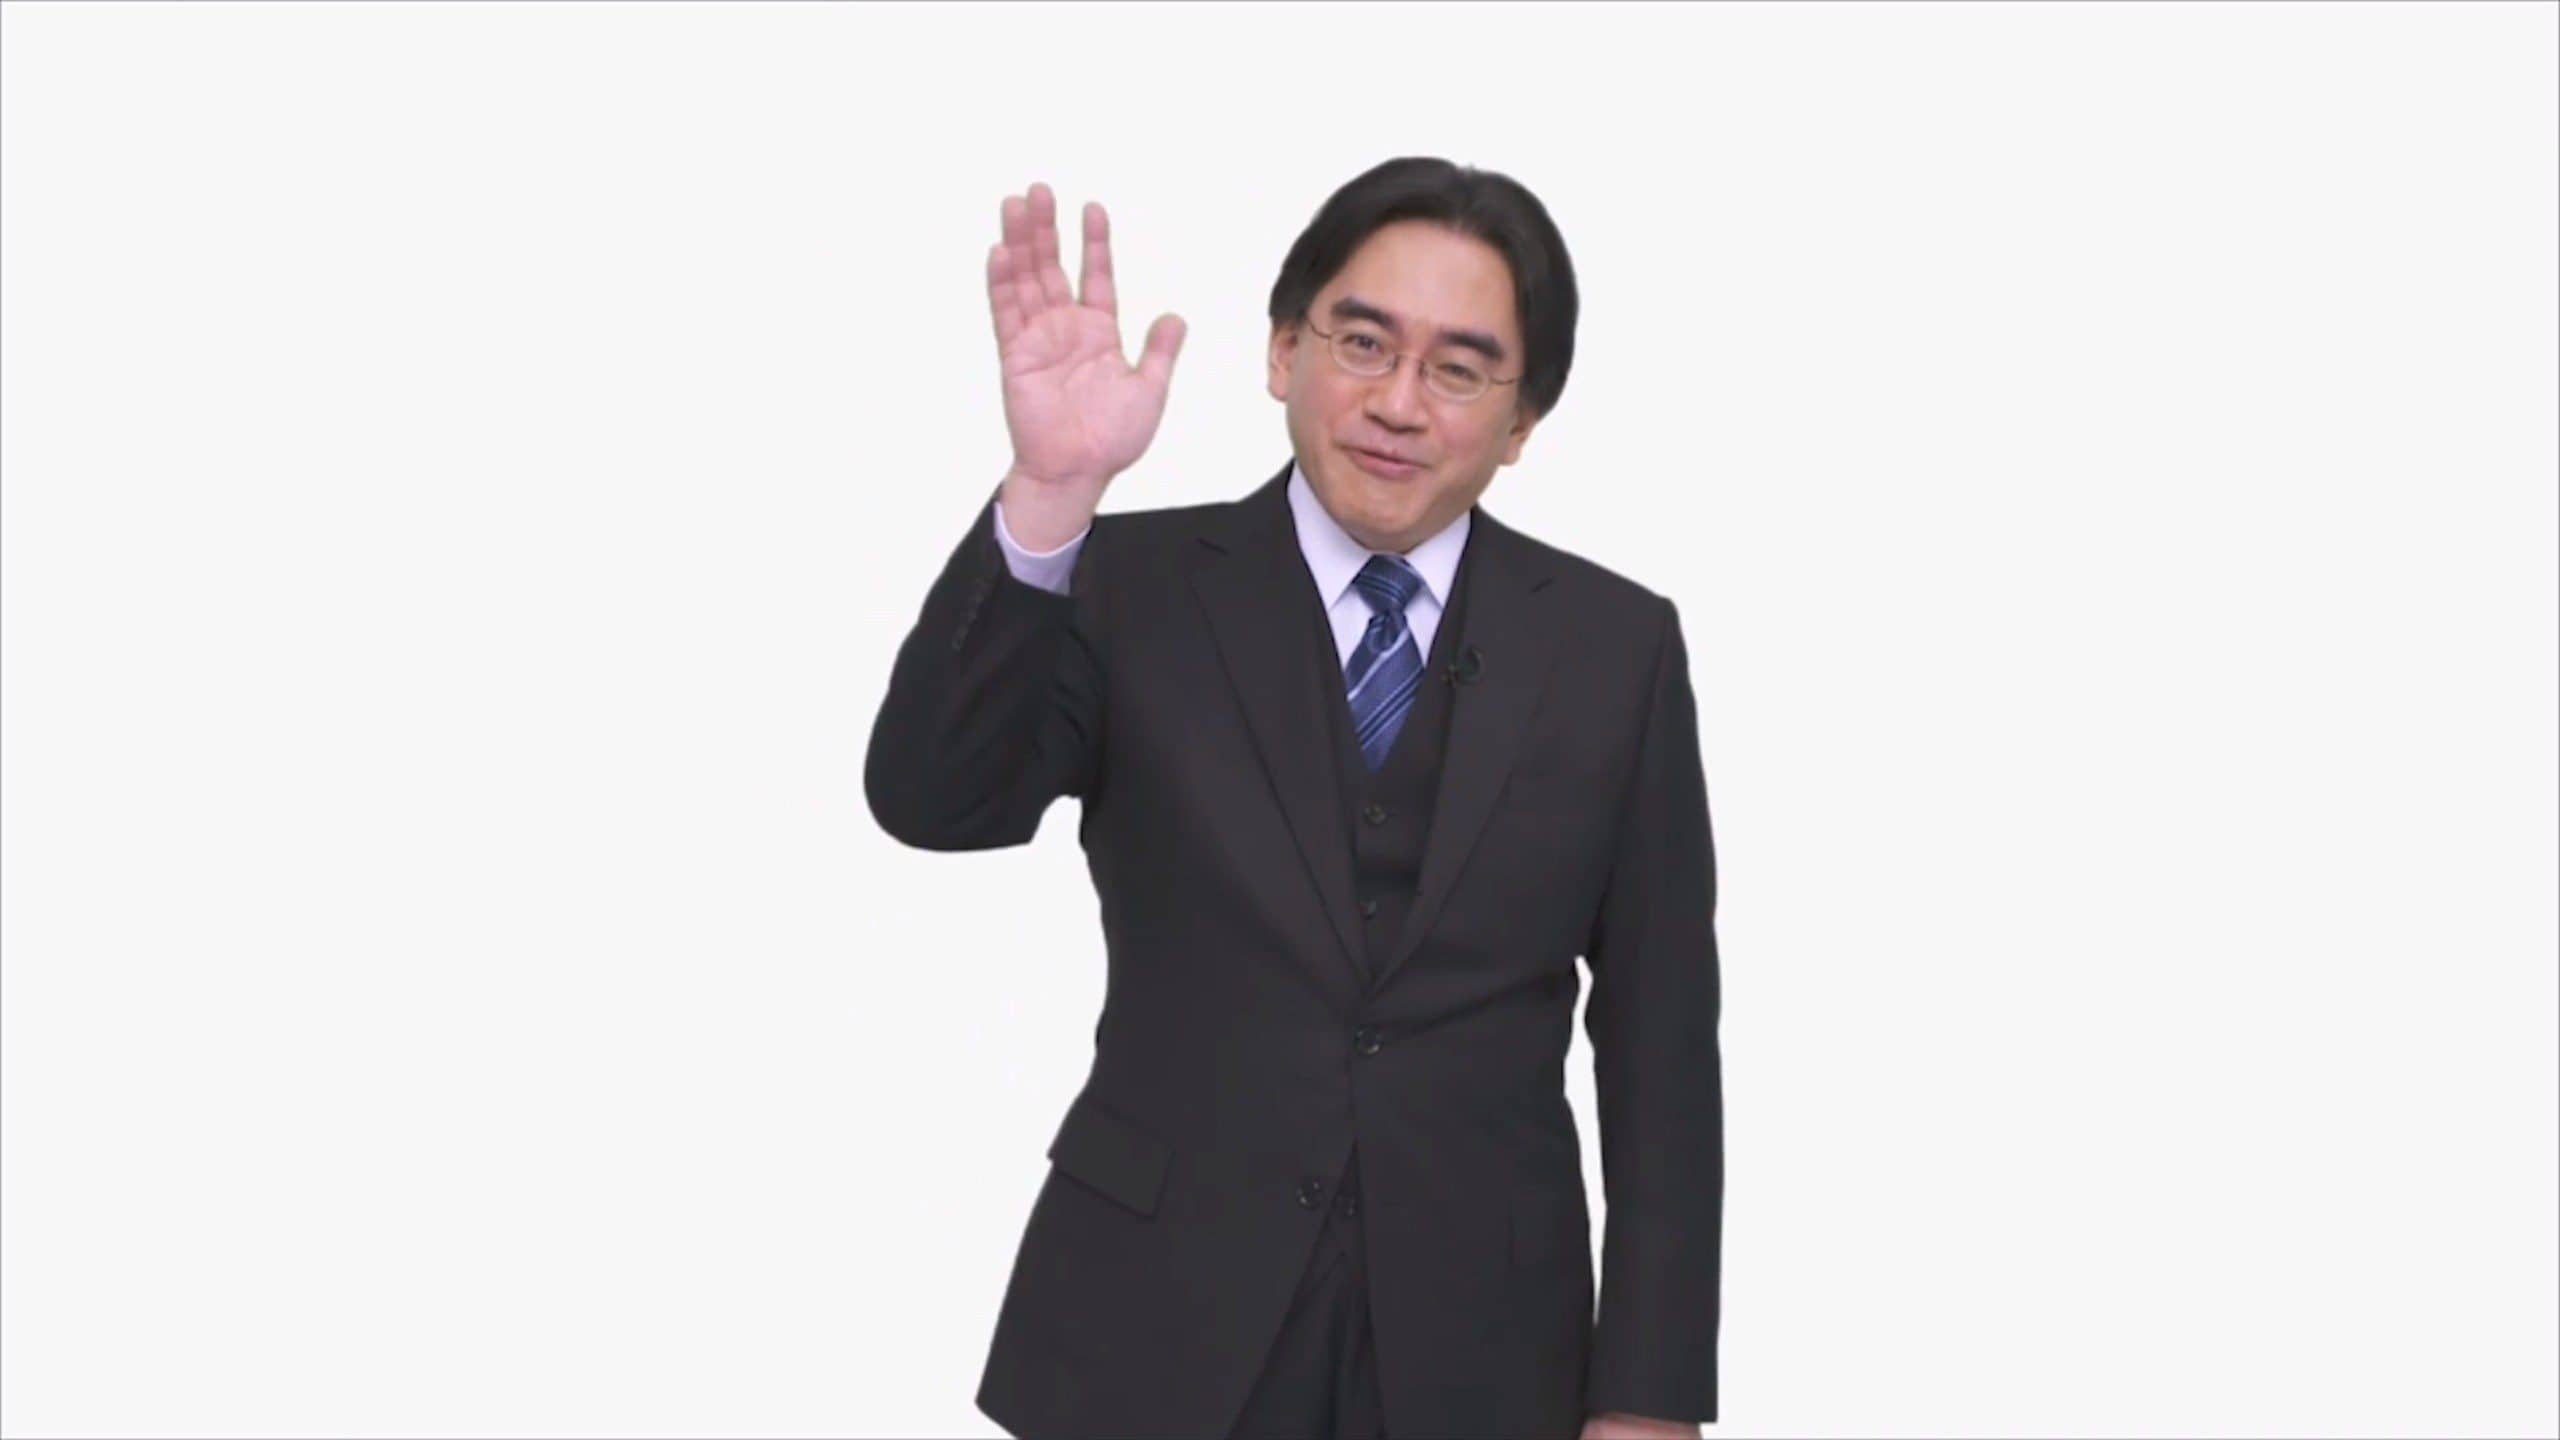 La última parte de Iwata Asks: Final Fantasy Crystal Chronicles ha sido traducida al inglés